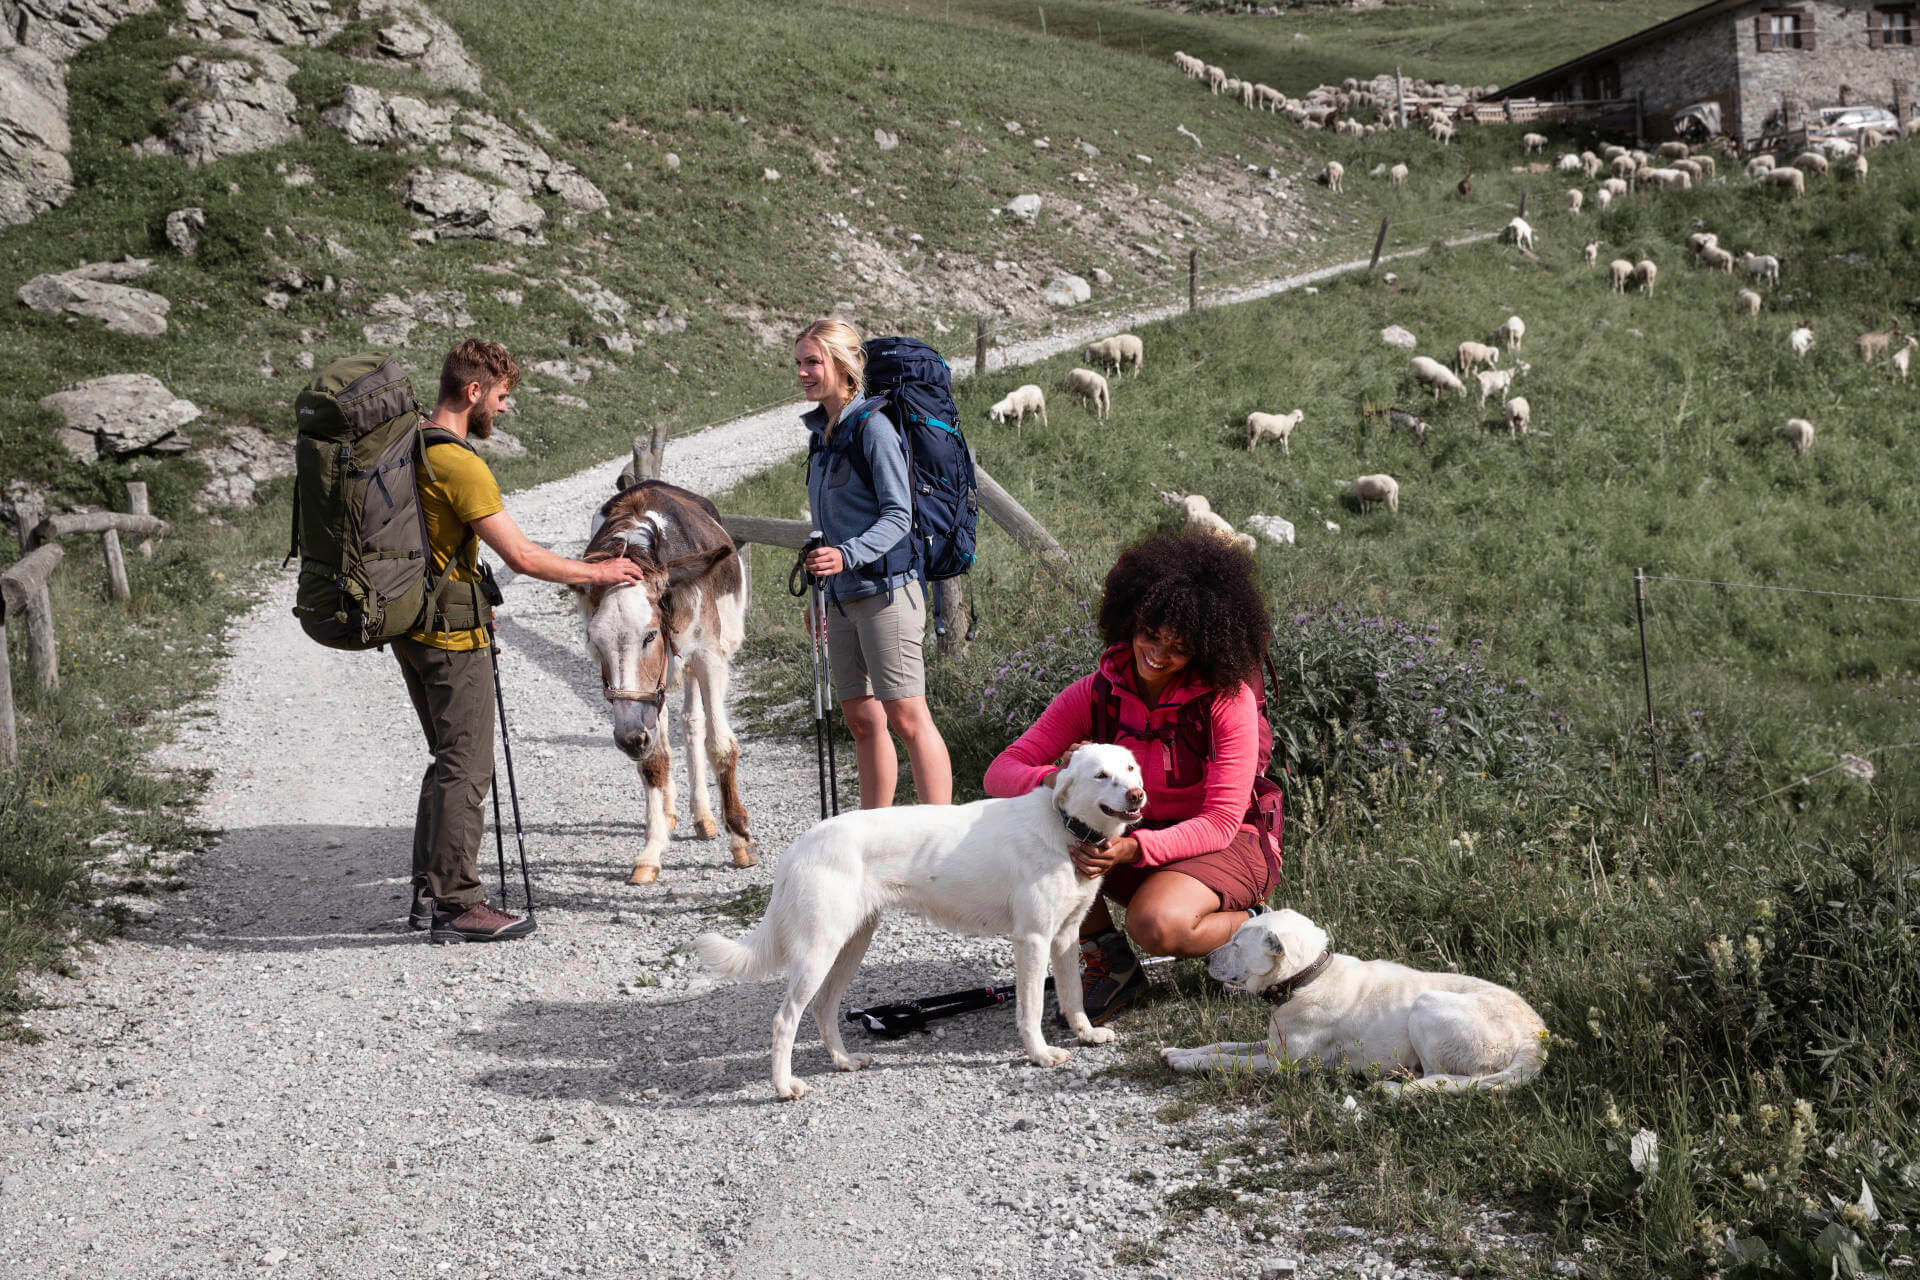 Planning hut-to-hut hikes - dogs and donkeys welcome the hikers shortly before the hut.